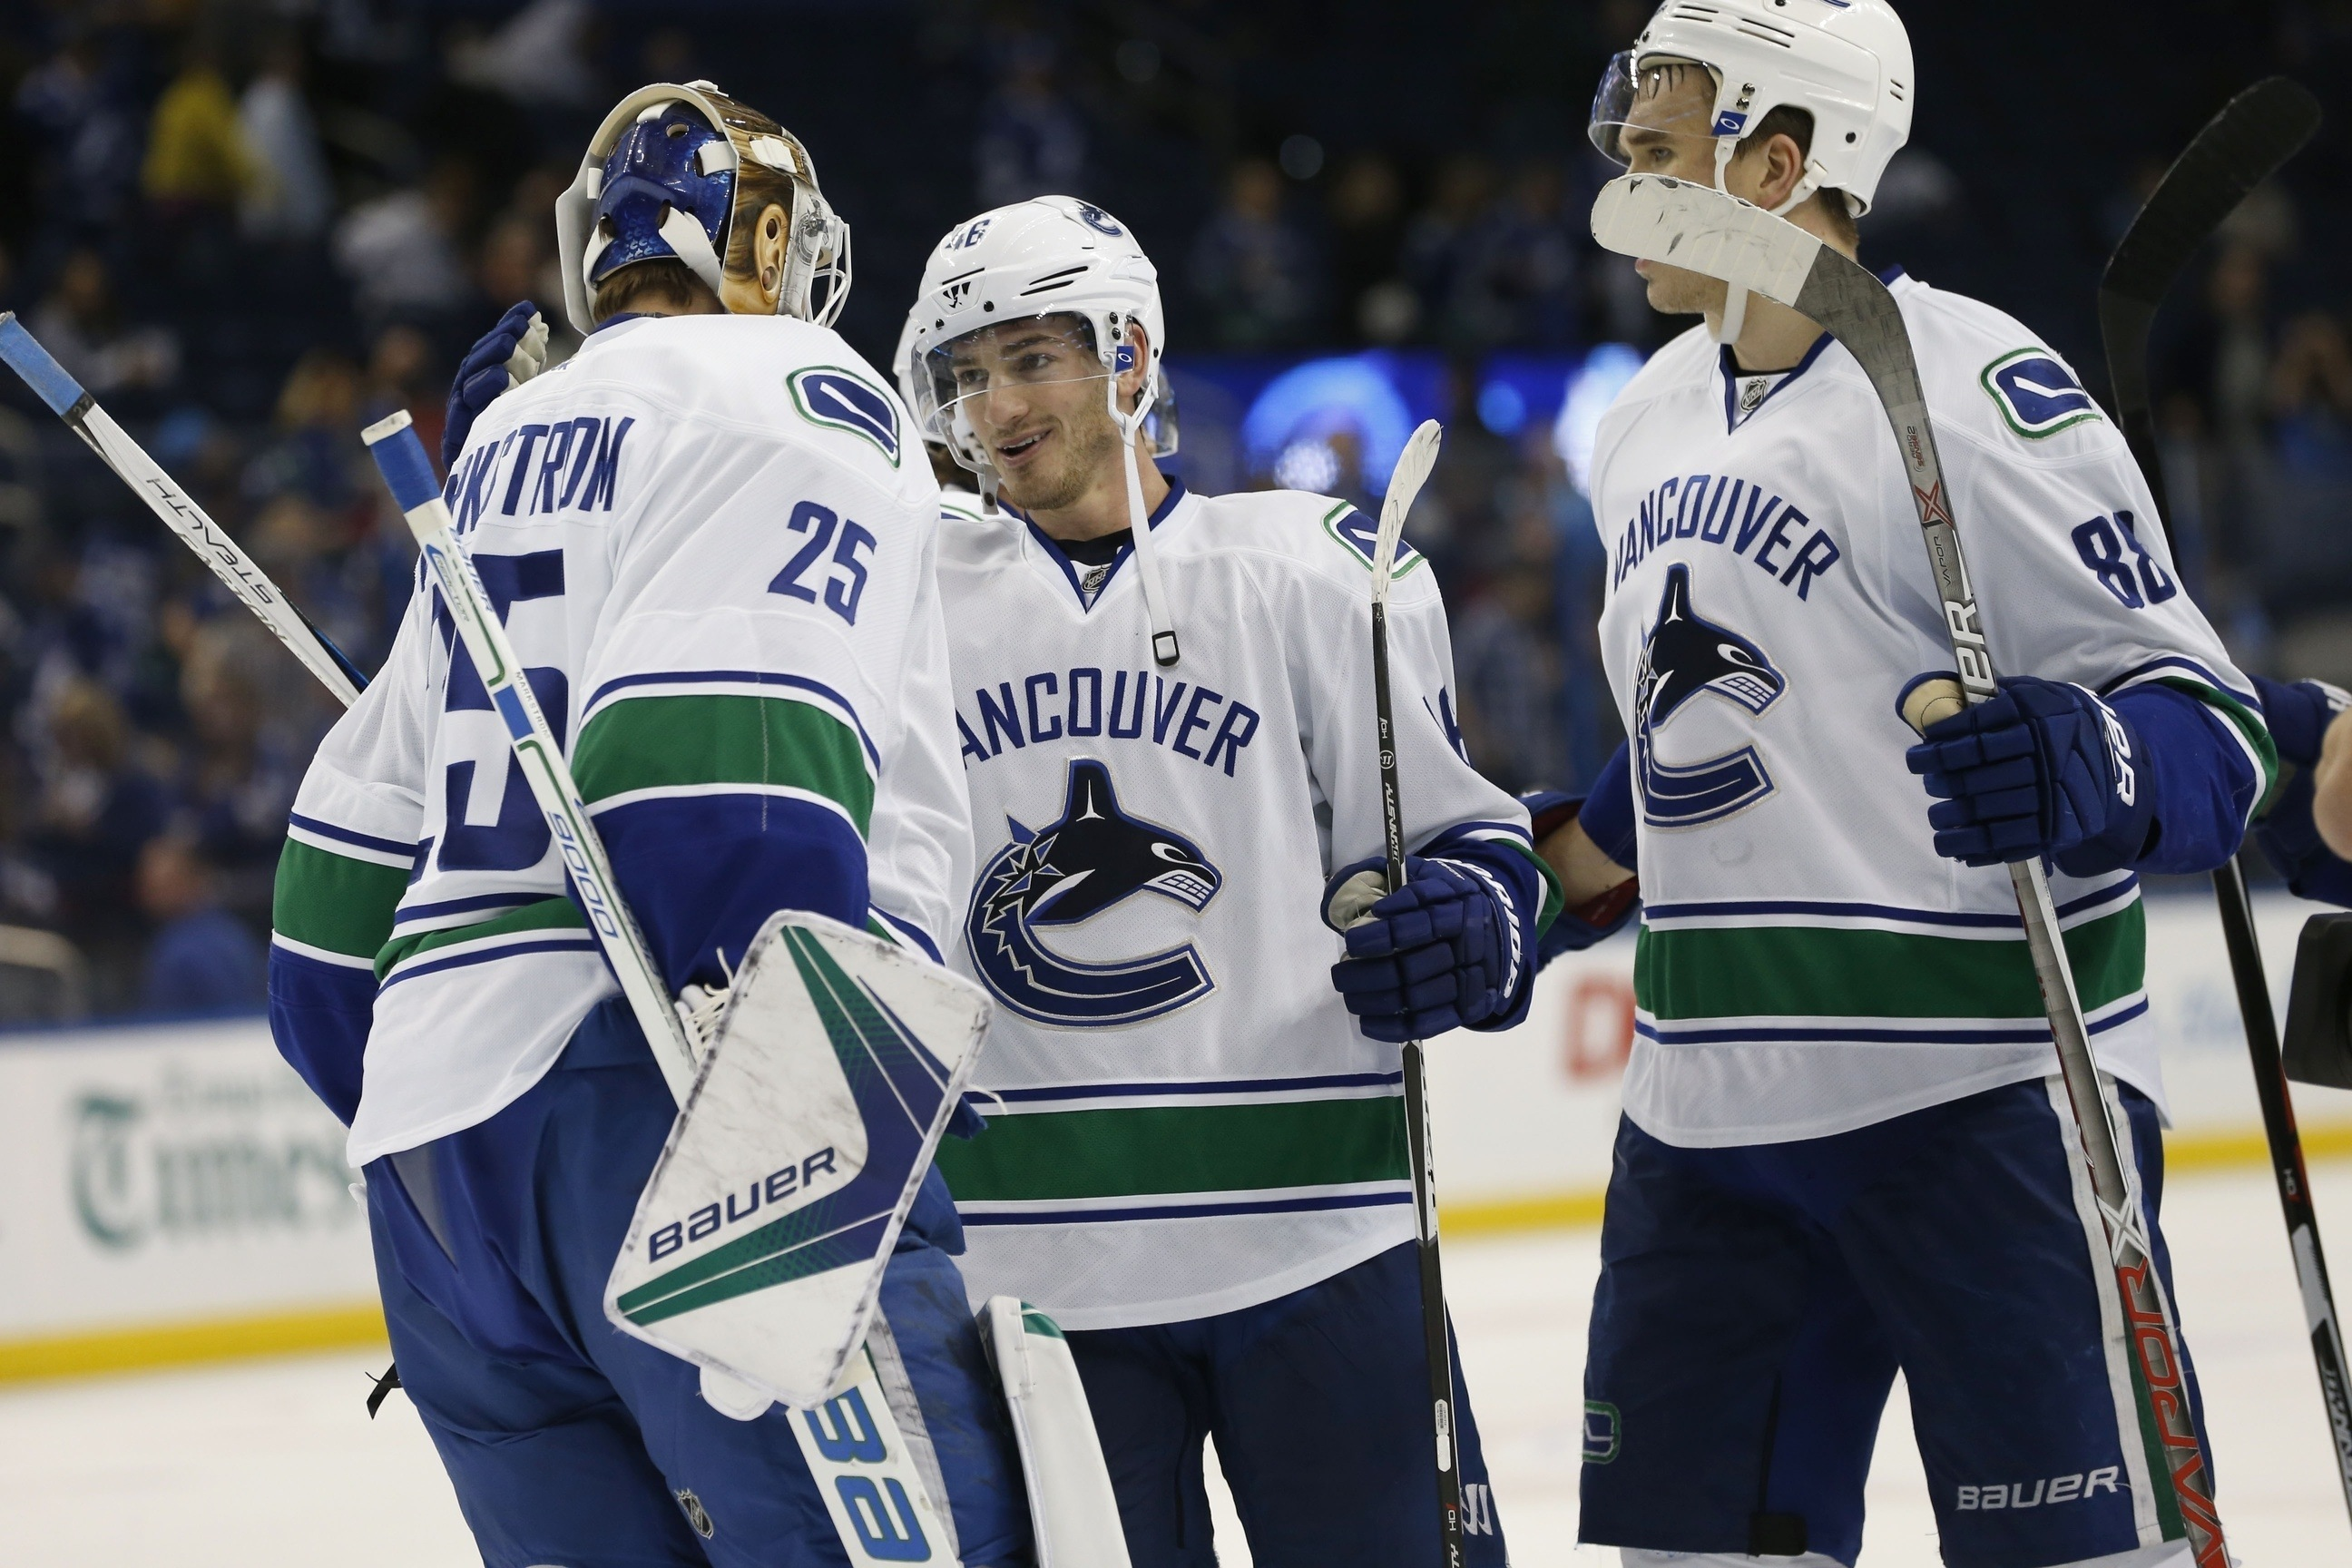 Down Goes Brown Grab Bag: Cool Kids, Retaliation Fights, And Non-Rebuilding Canucks